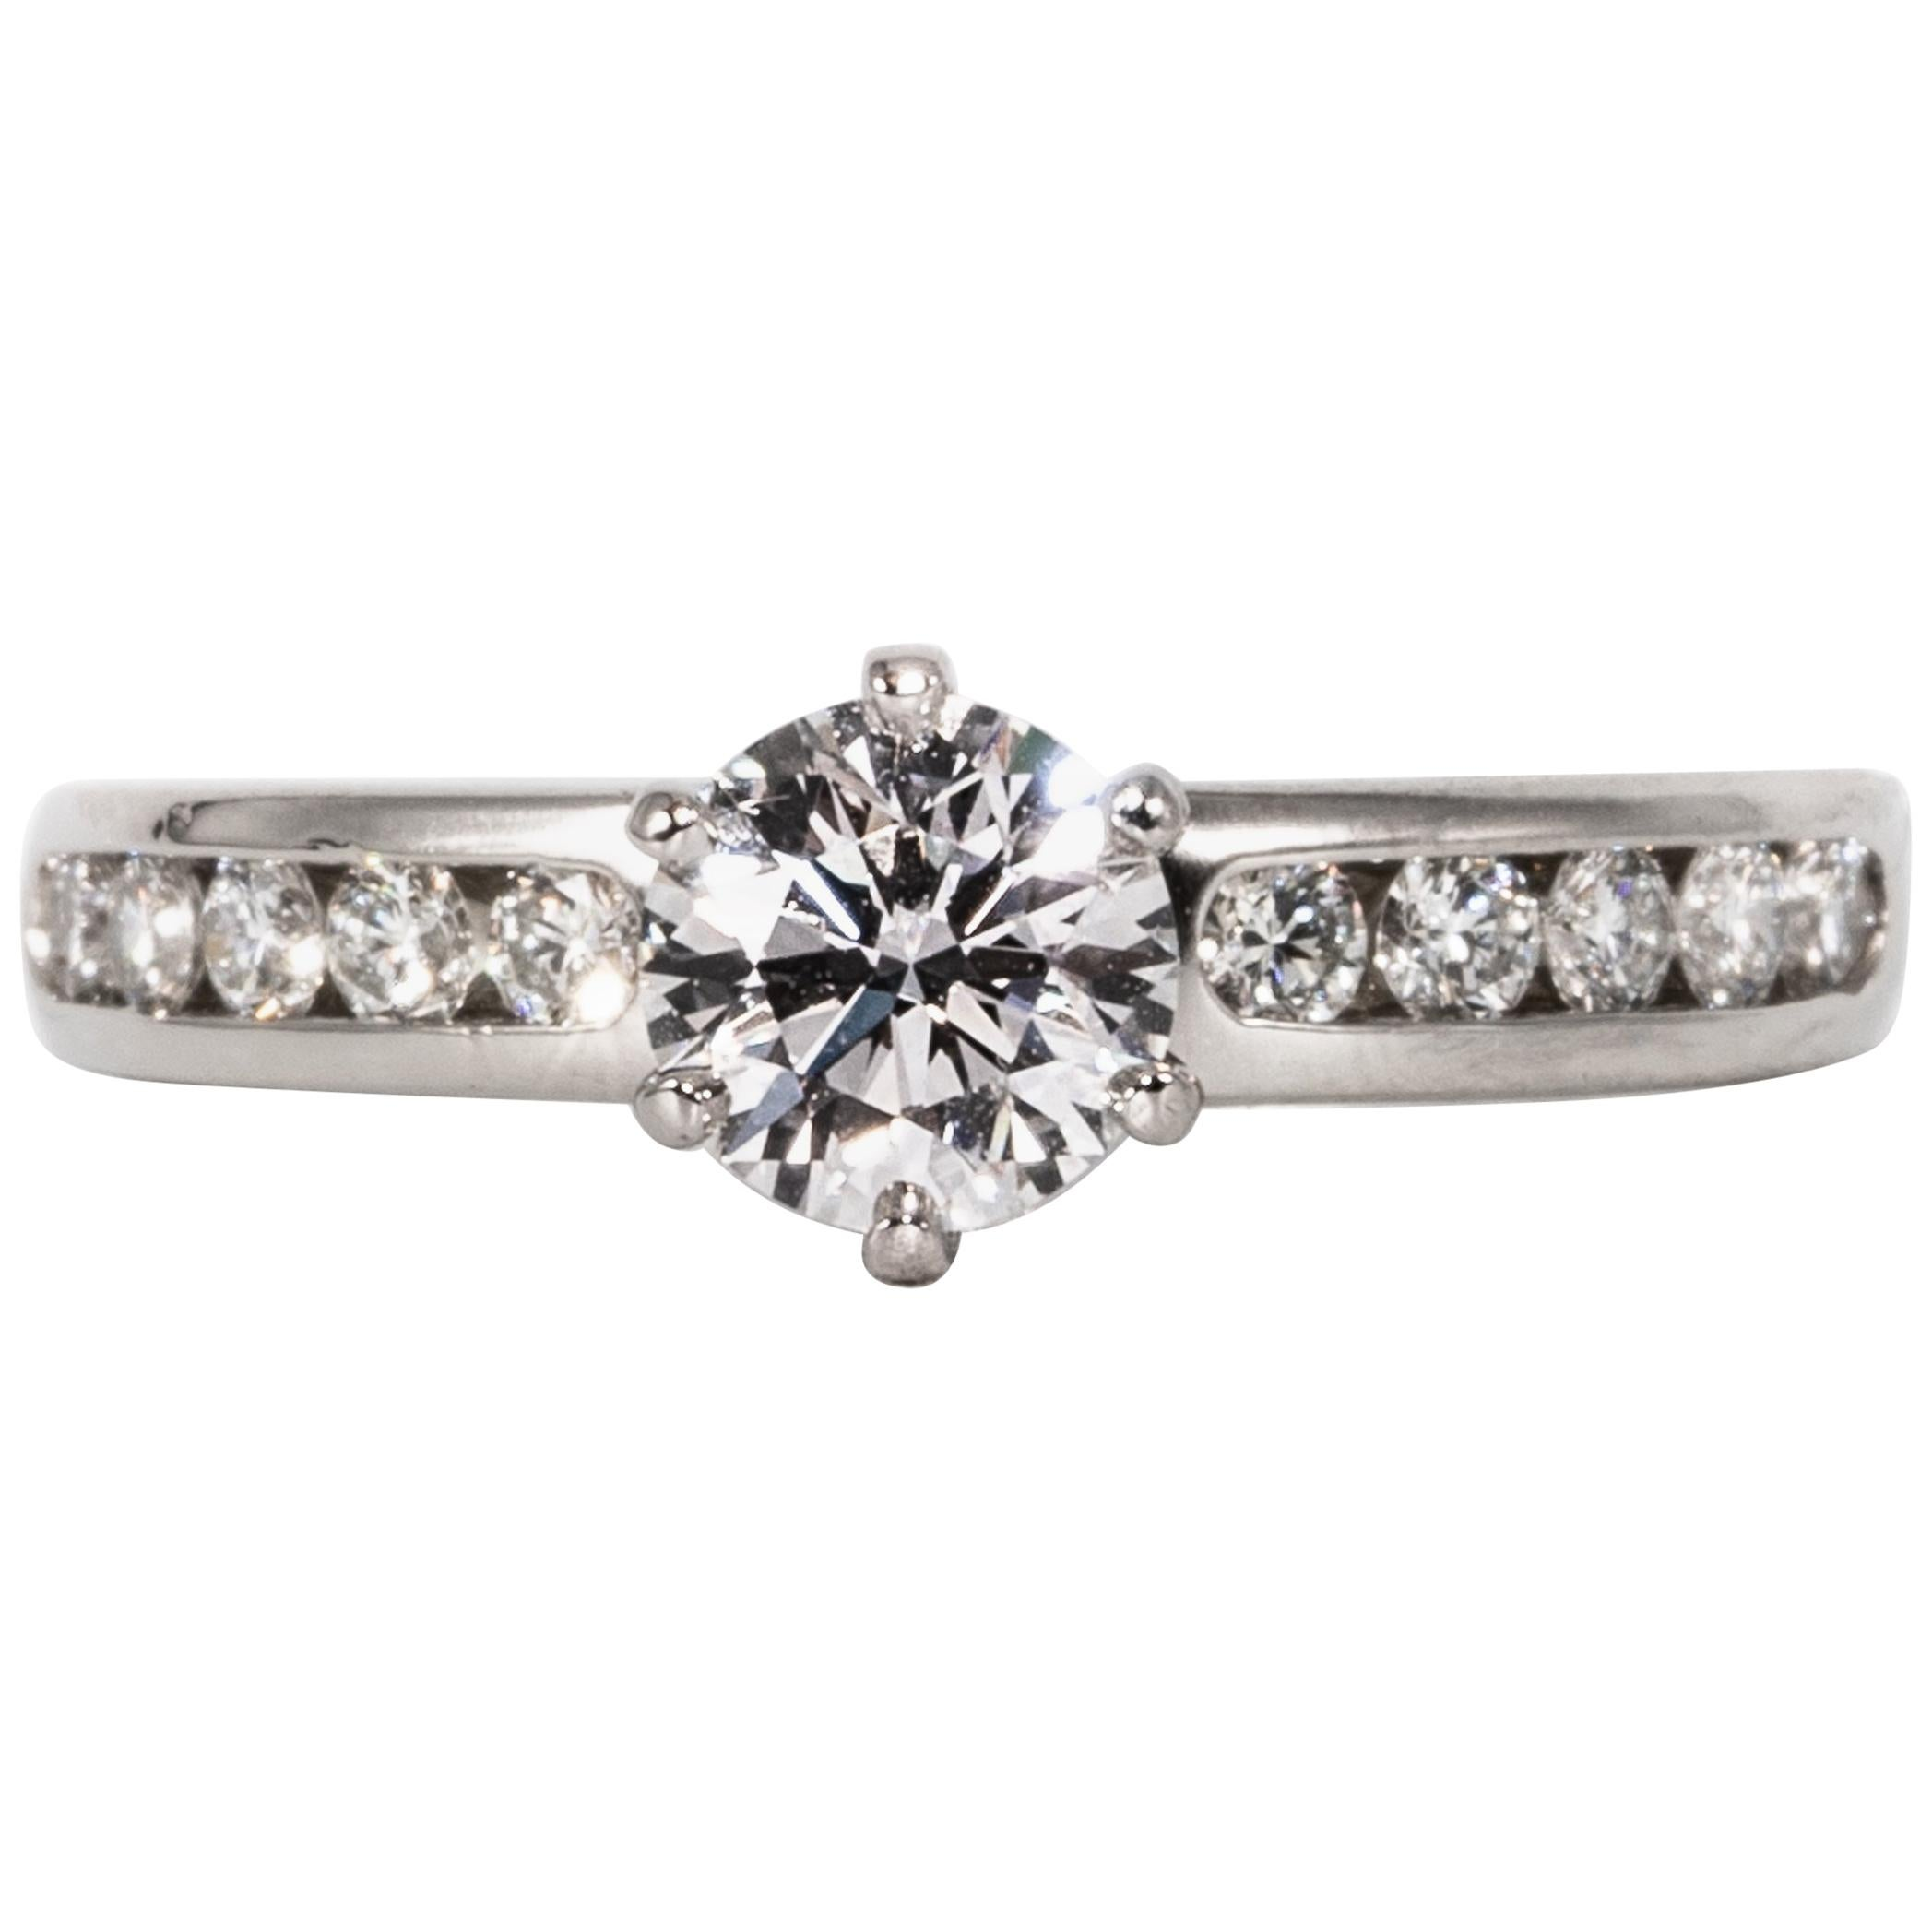 Tiffany Co Engagement Rings 288 For Sale At 1stdibs